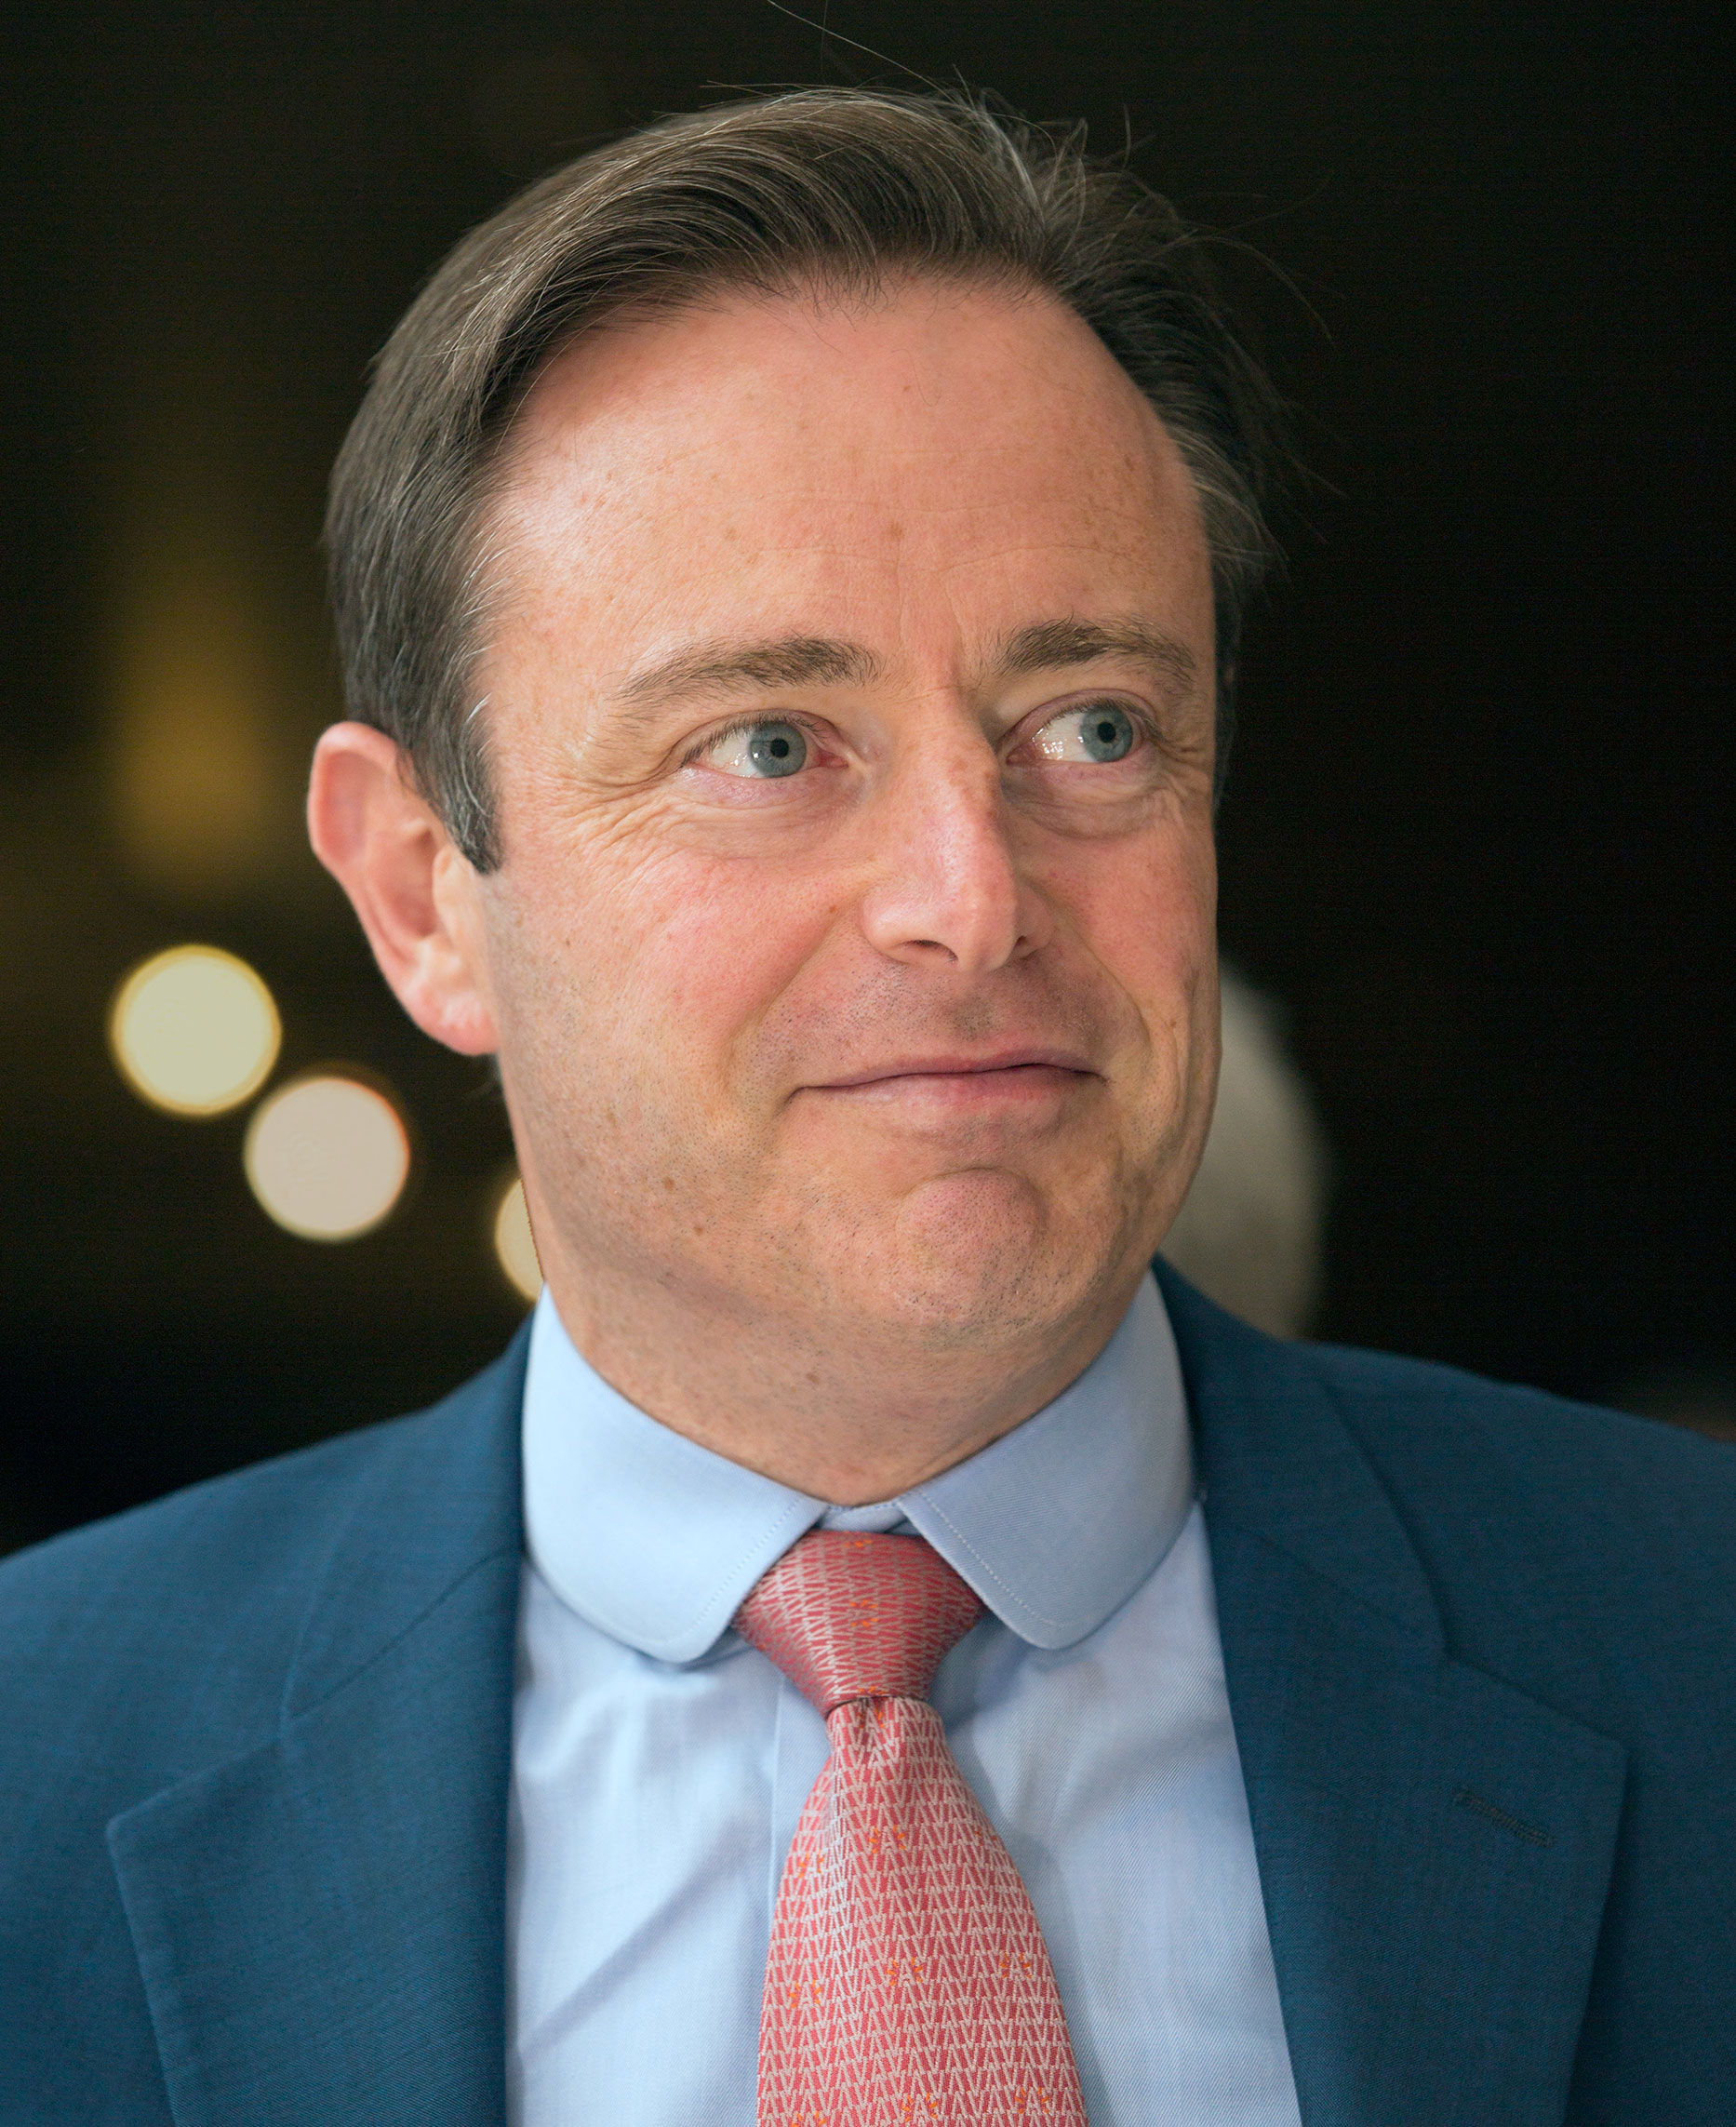 The 49-year old son of father Henri De Wever and mother(?) Bart de Wever in 2020 photo. Bart de Wever earned a 0.007 million dollar salary - leaving the net worth at 0.03 million in 2020